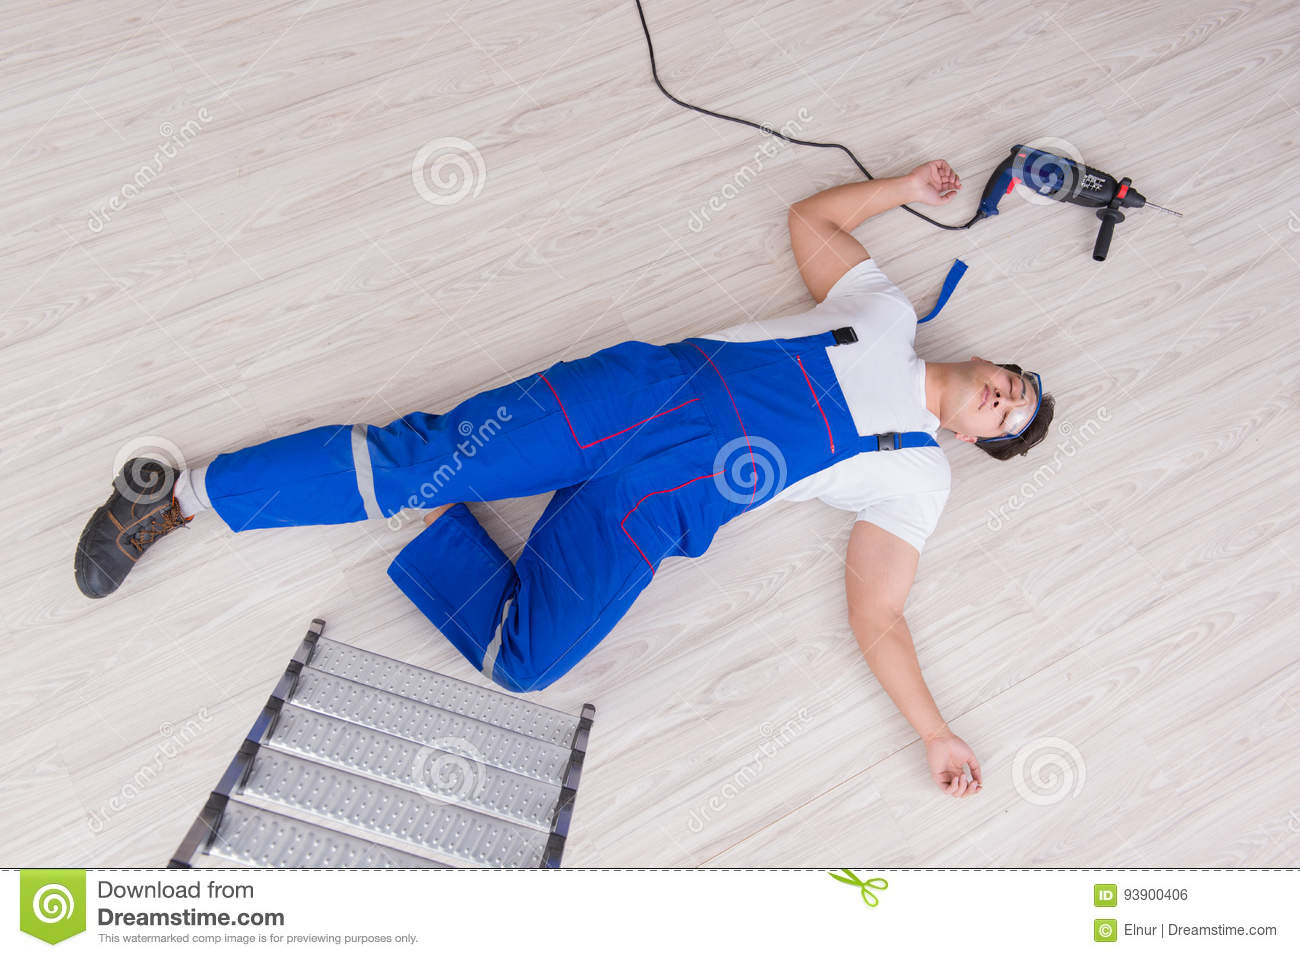 The worker after falling from height - unsafe behavior